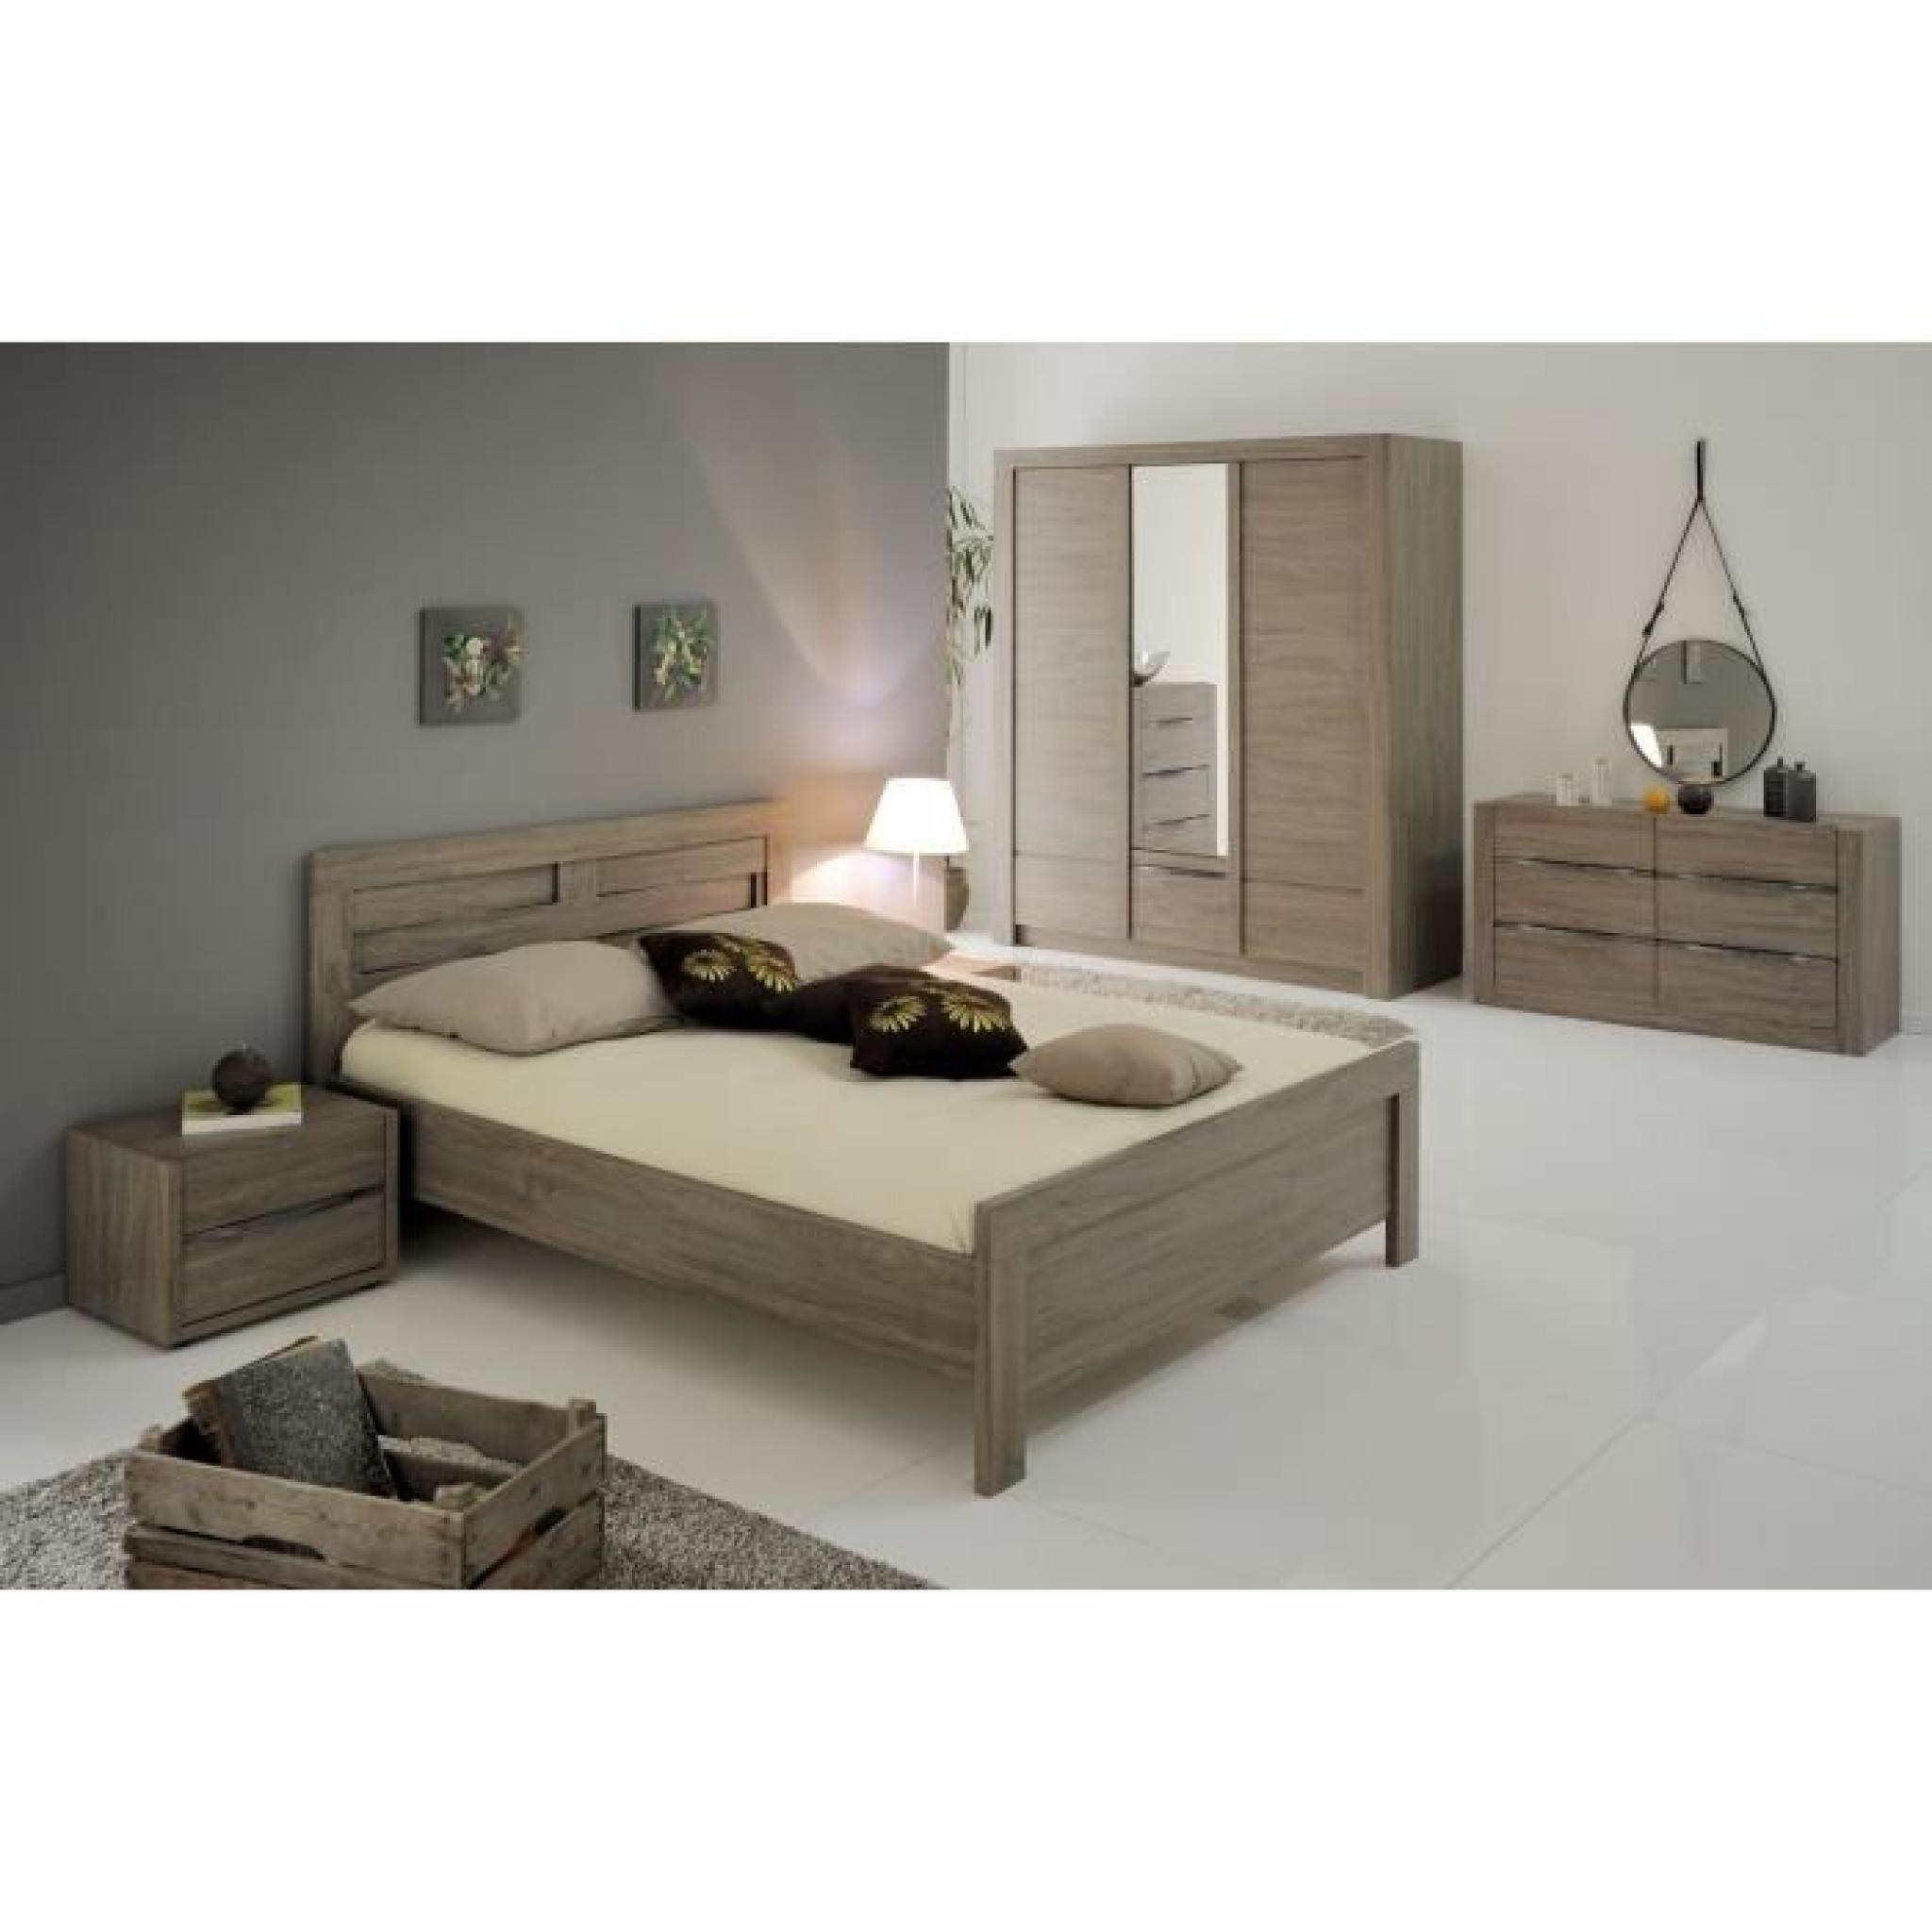 lit salan 140x190 ch ne oxford achat vente lit pas cher couleur et. Black Bedroom Furniture Sets. Home Design Ideas